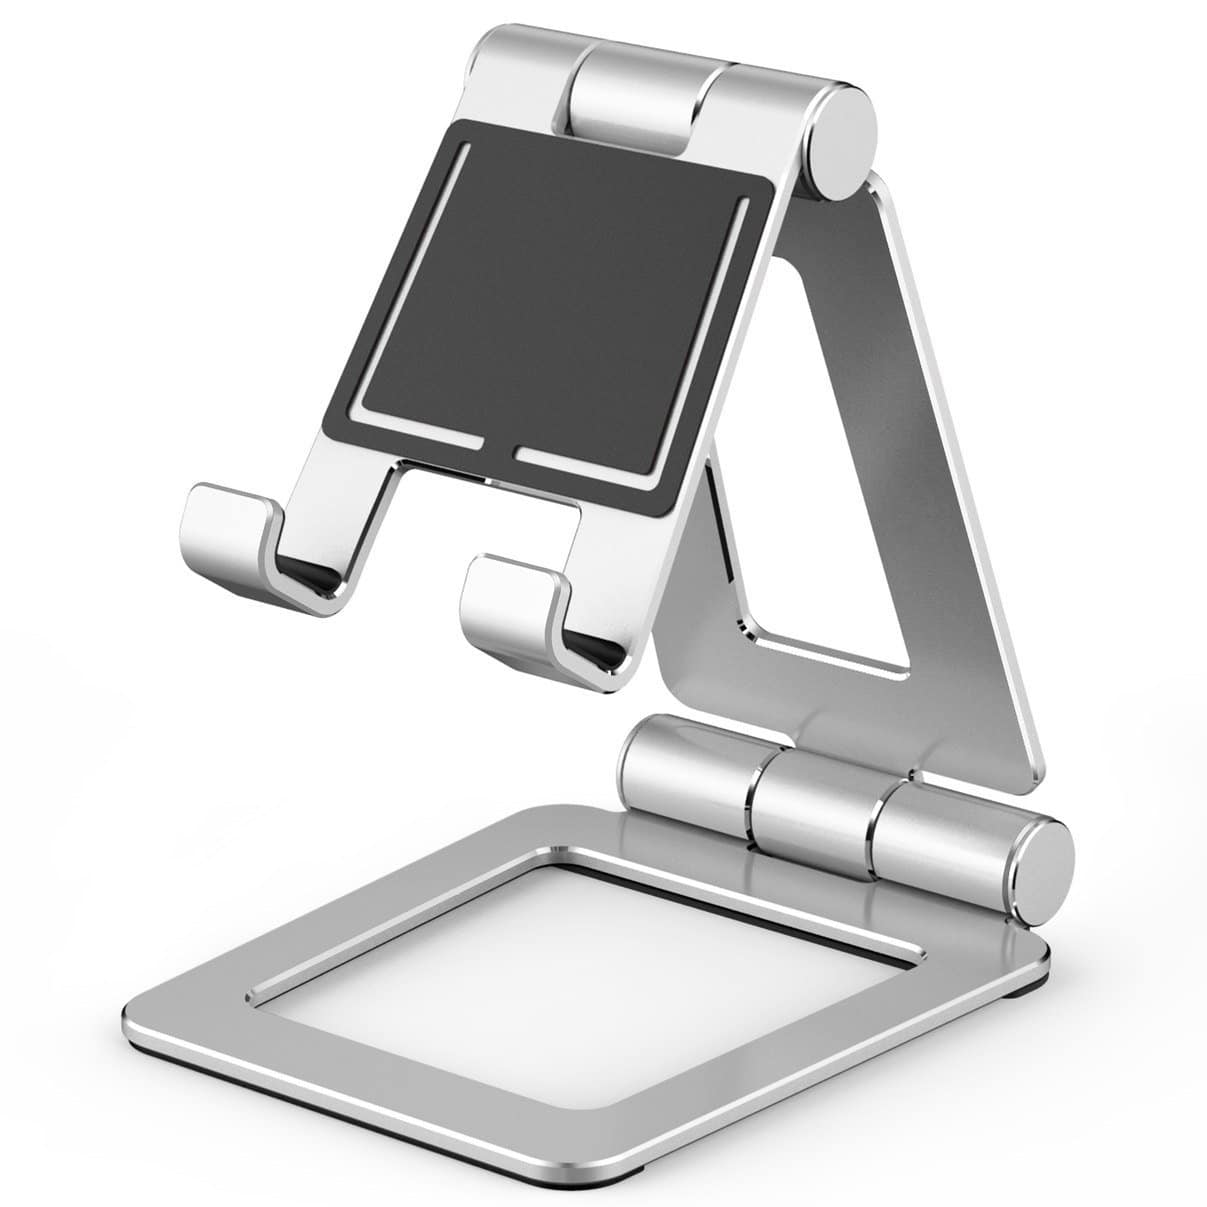 Cell Phone Stand, Adjustable Tablet Stand, Universal Dual Foldable iPhone Stand Multi Angle phone Holder for Switch, iPad,Samsung, Nexus, iPhone X, Other Tablets Silver $10.99